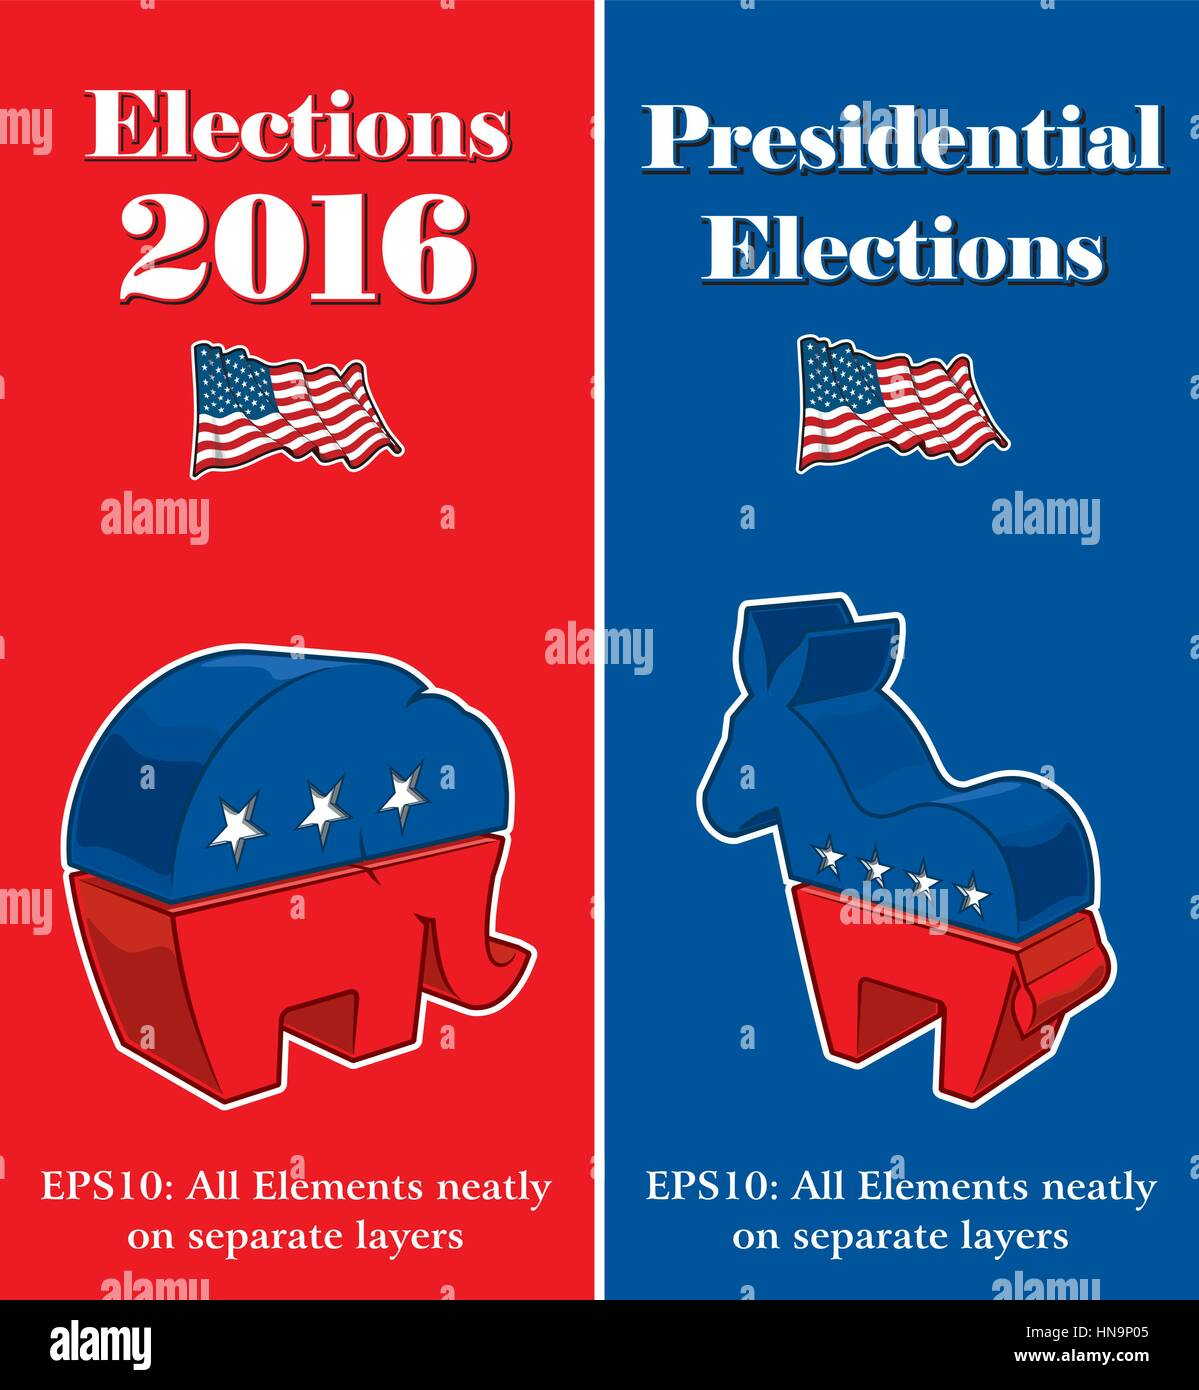 Vector banner mock ups about the American Presidential Elections compiled by the Republican and Democratic party - Stock Image